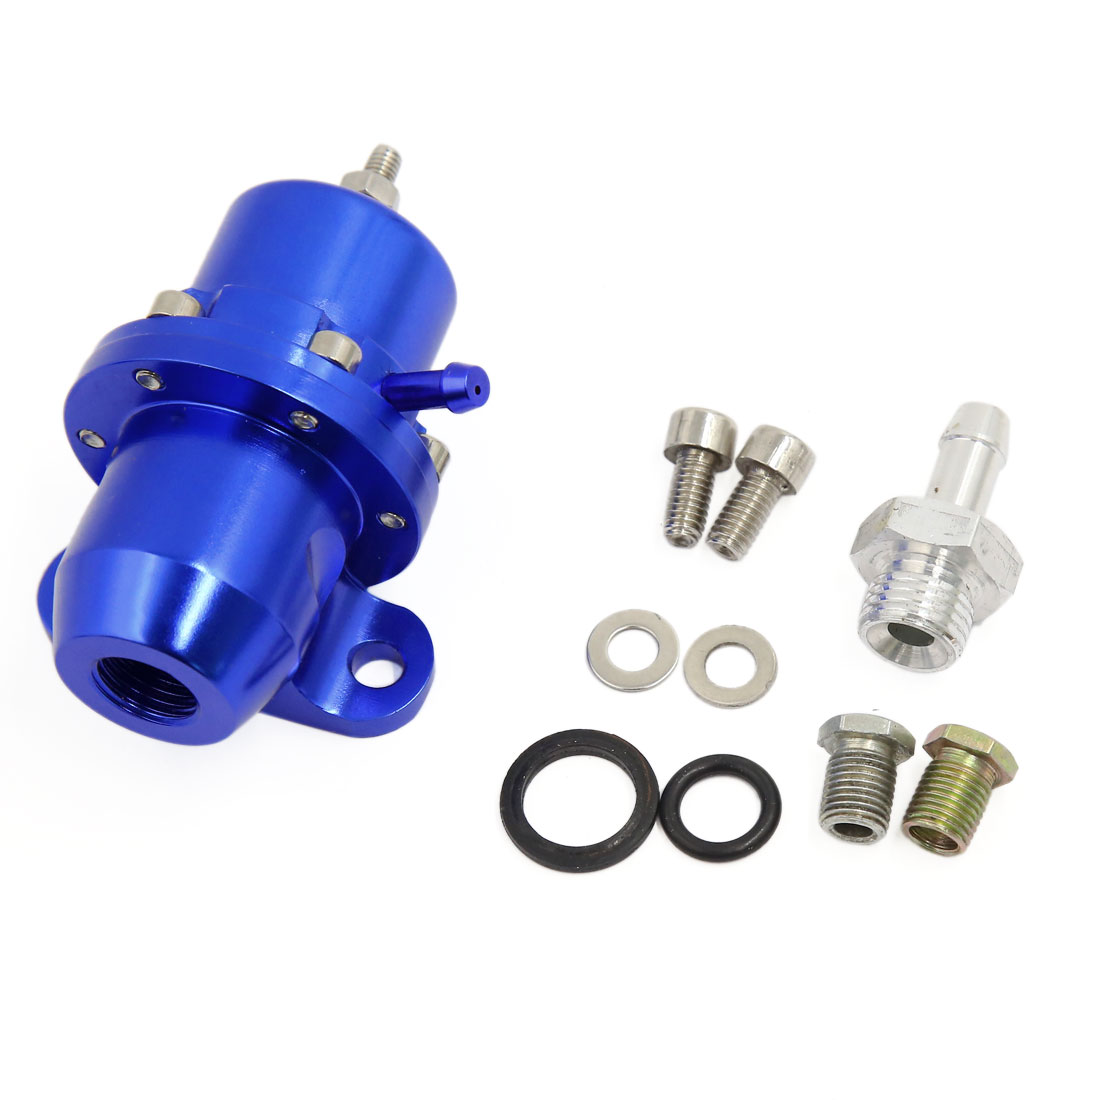 Universal Straight 1:1 Ratio Adjustable Fuel Pressure Regulator Blue for Car